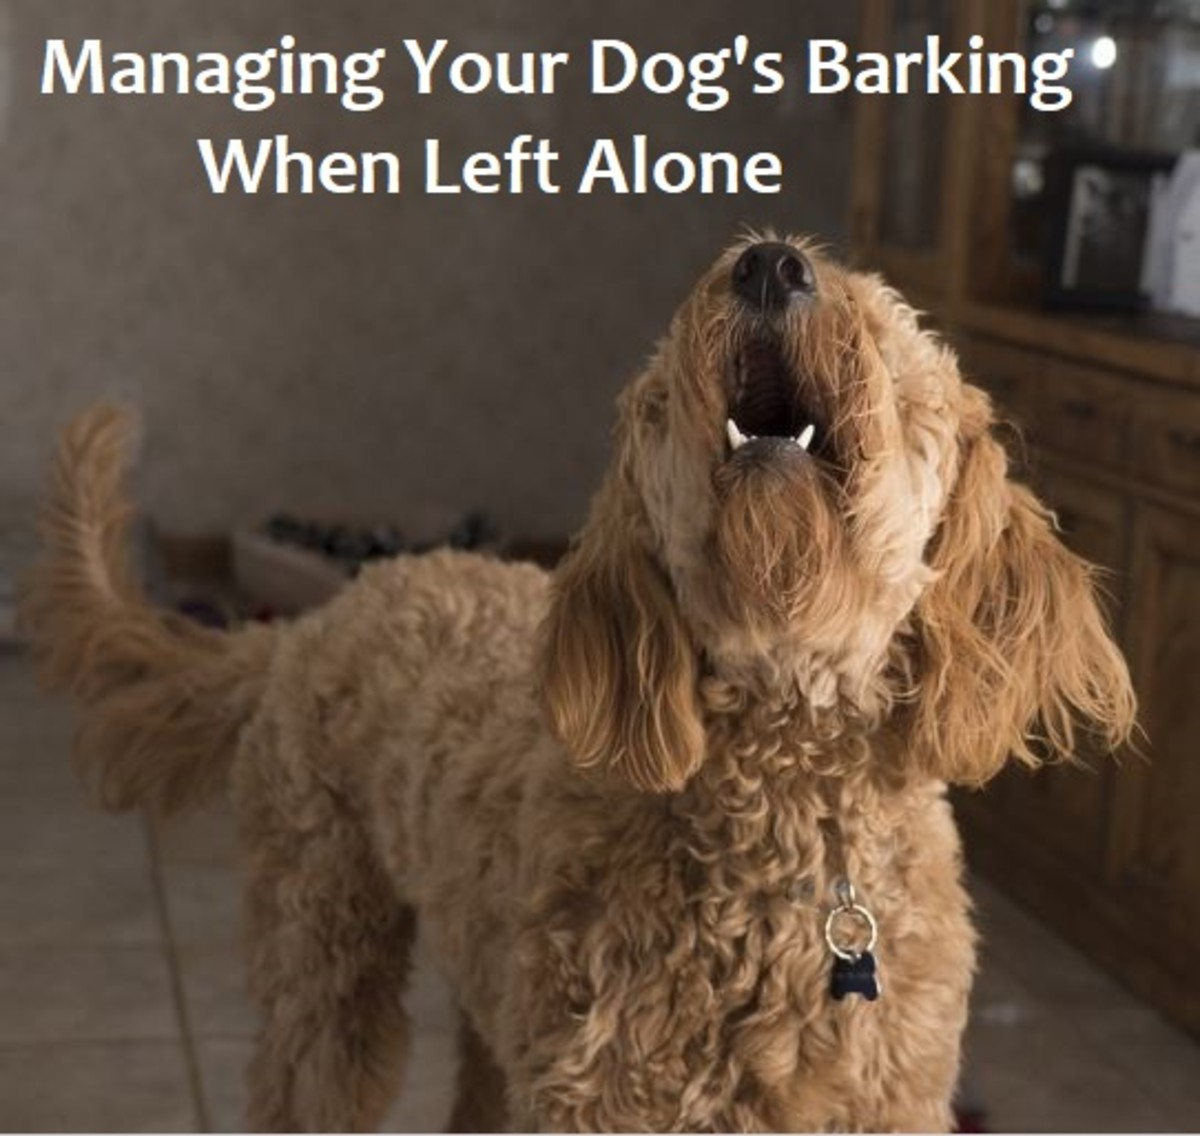 How to Deal With Dogs Barking When Left Alone